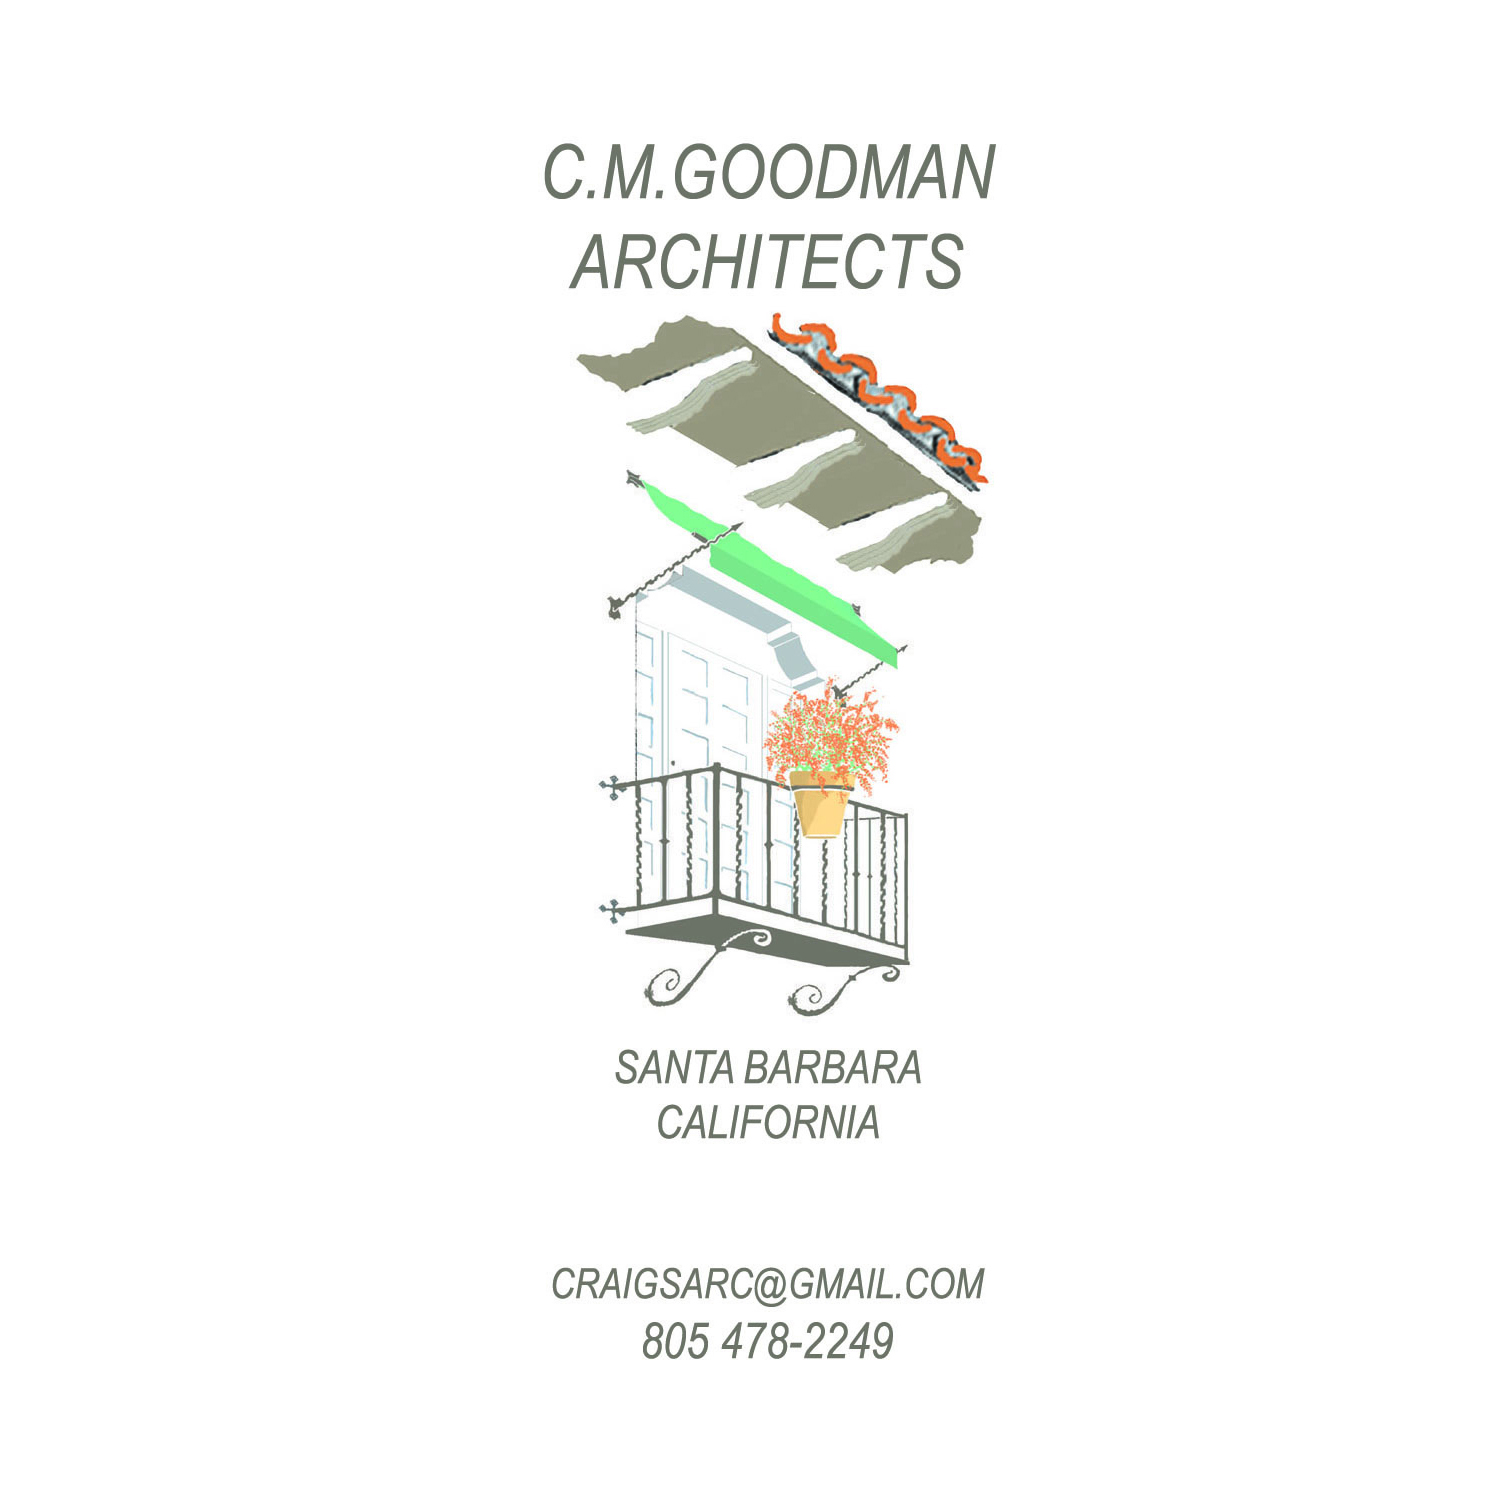 C.M.  GOODMAN ARCHITECTS